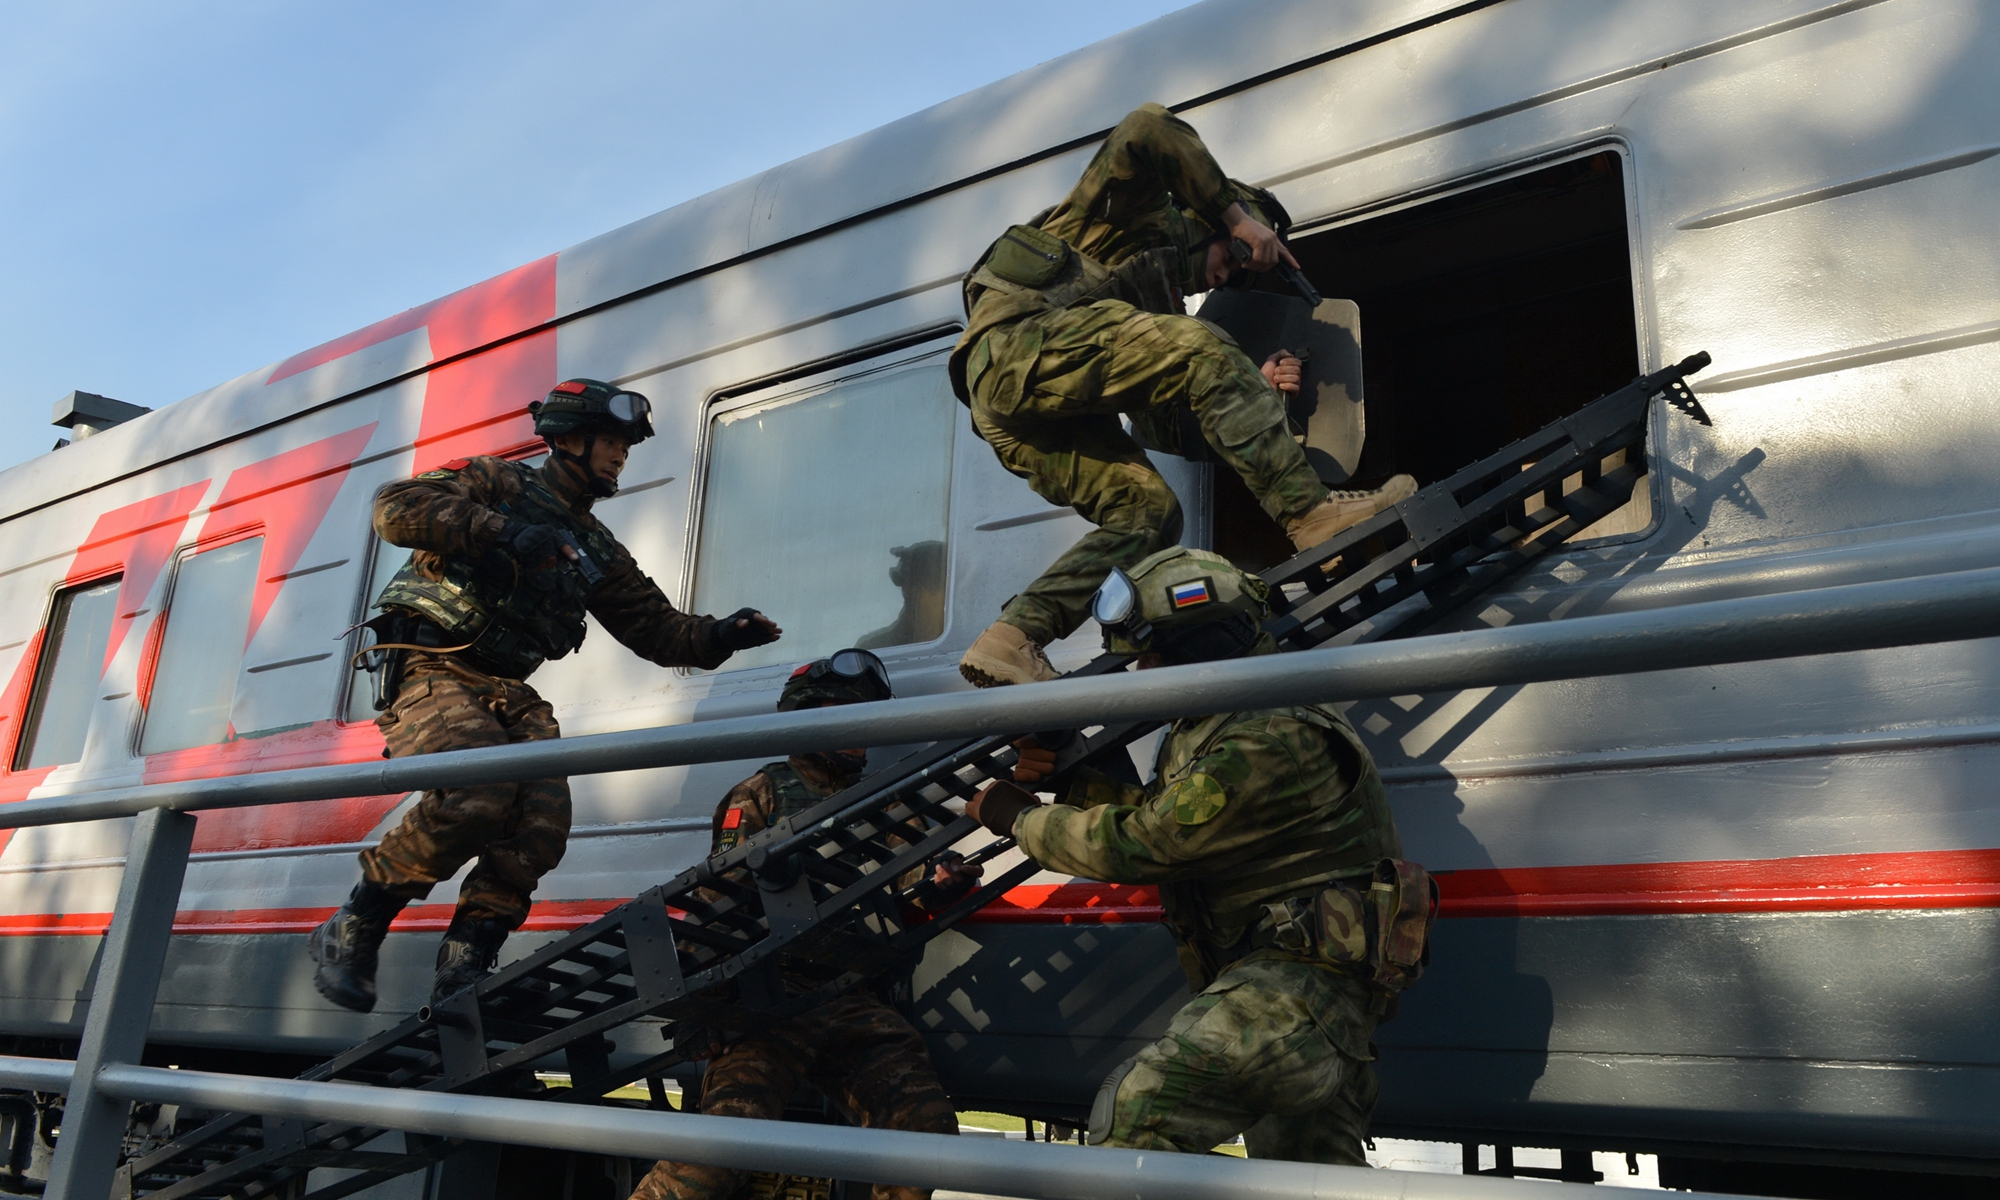 The joint counter-terrorism exercise Cooperation-2019 of the Chinese People's Armed Police Force (PAP) and the Russian National Guard in the suburbs of Novosibirsk in October 2019. Photo: Xinhua